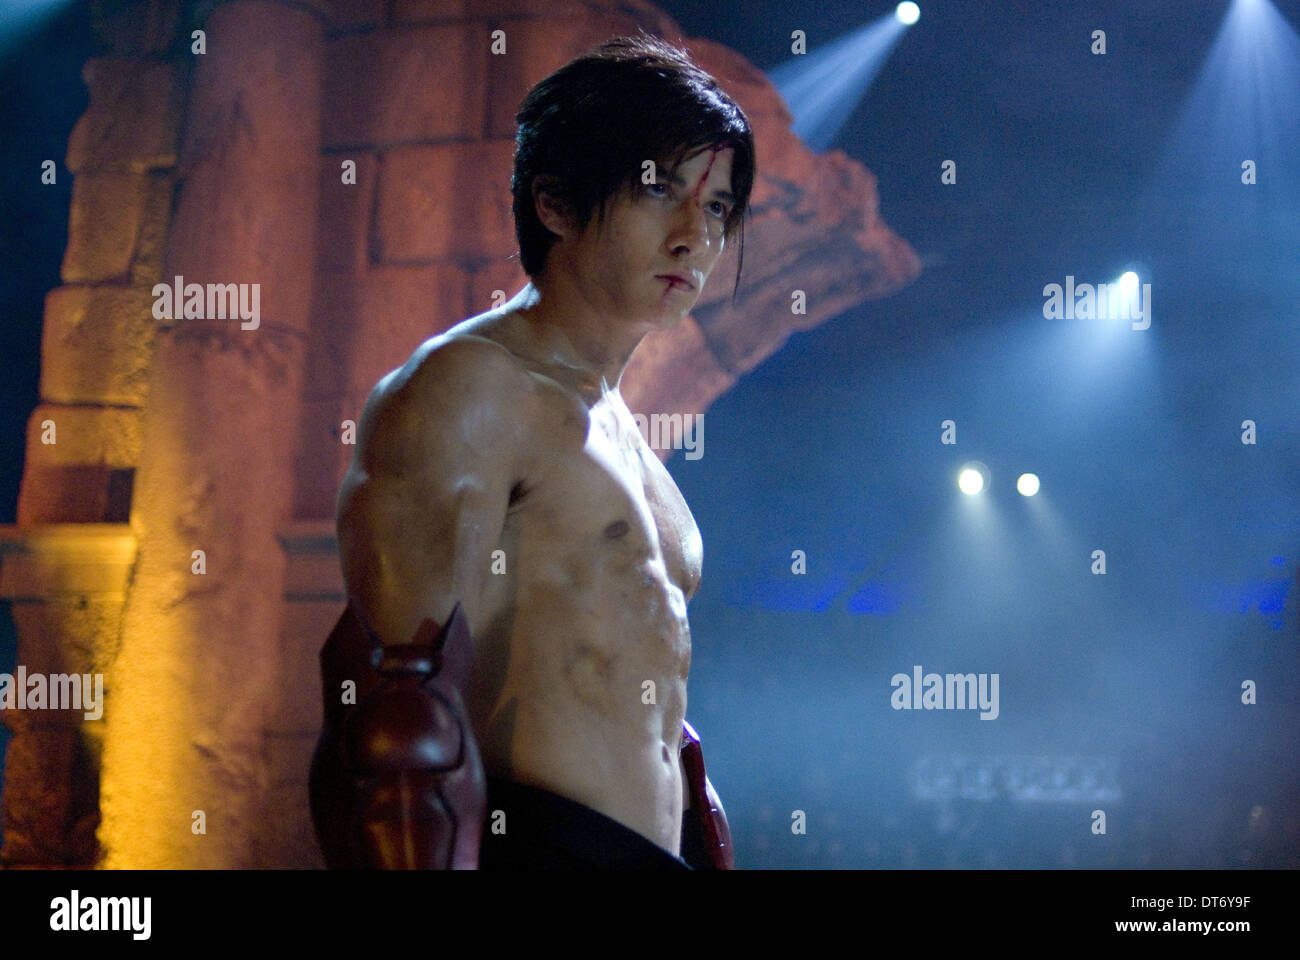 Jon Foo Tekken 2010 Stock Photo 66535995 Alamy